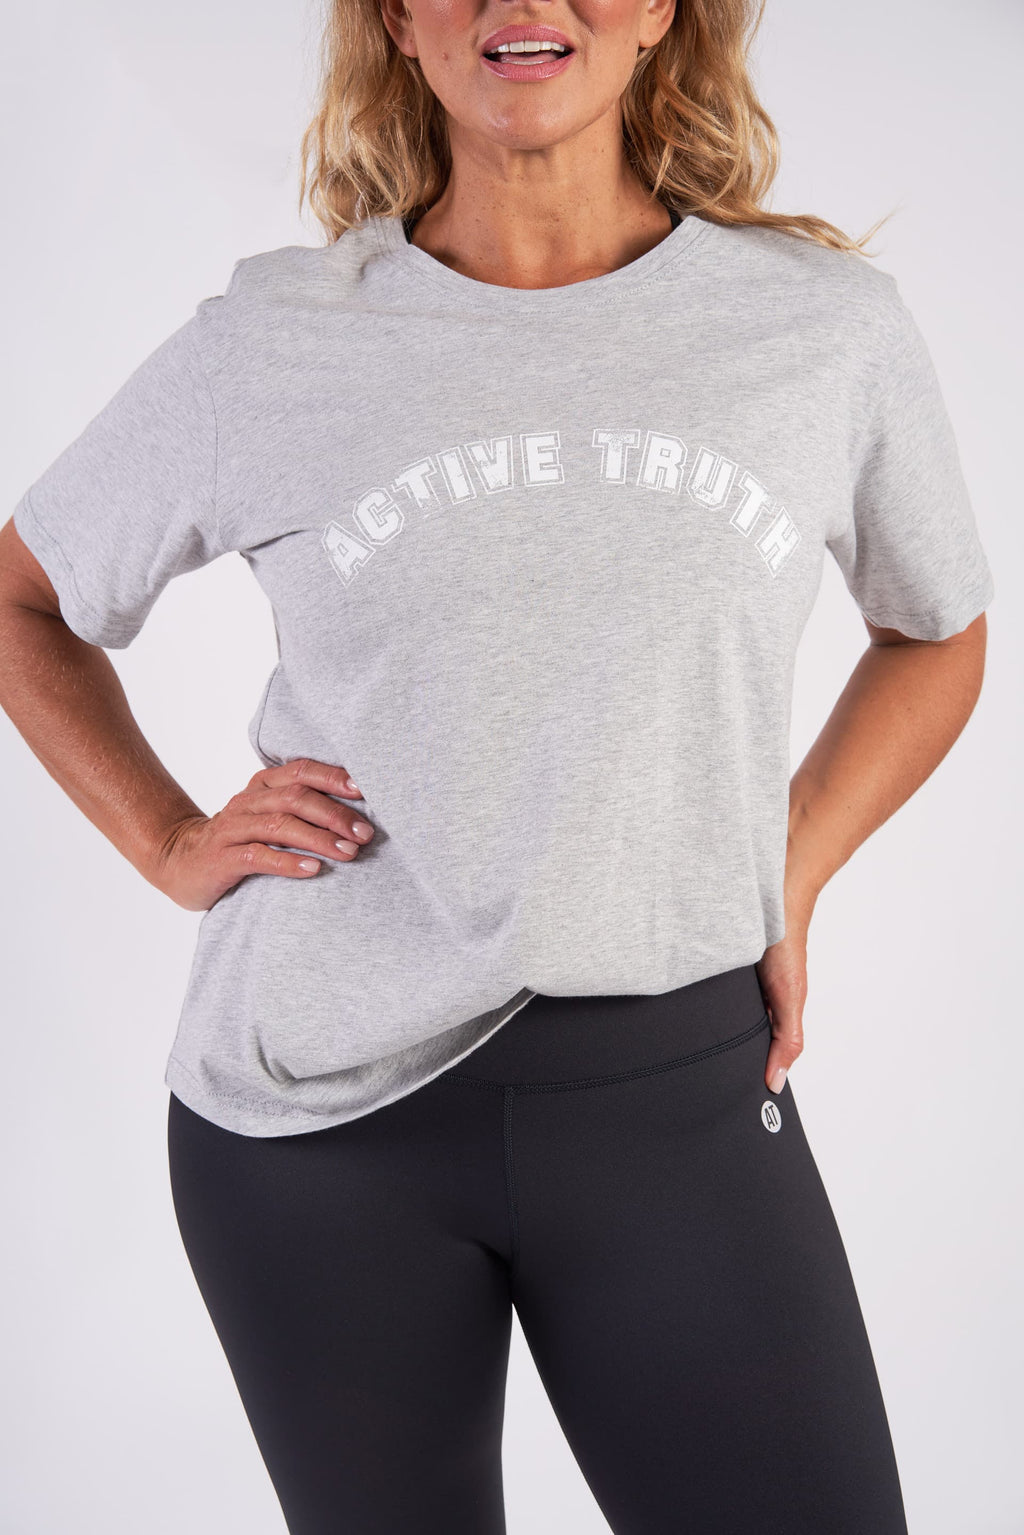 activewear-relaxed-crew-tee-organic-cotton-greymarle-large-front